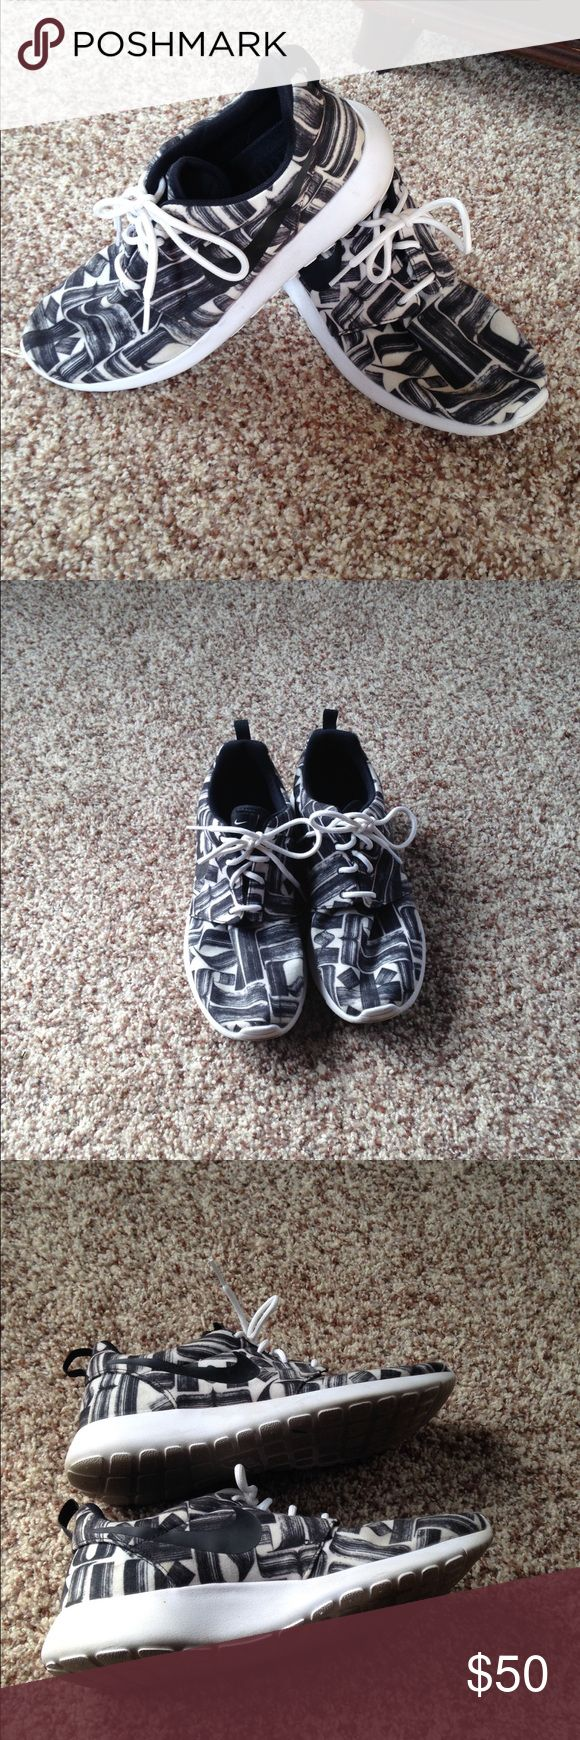 Nike Roshe Black/White print Nike Roshes in a fun black and white print. Gently worn. Majority of the wear is on the bottom of the shoes shown in the photo. Women's 9 Nike Shoes Athletic Shoes